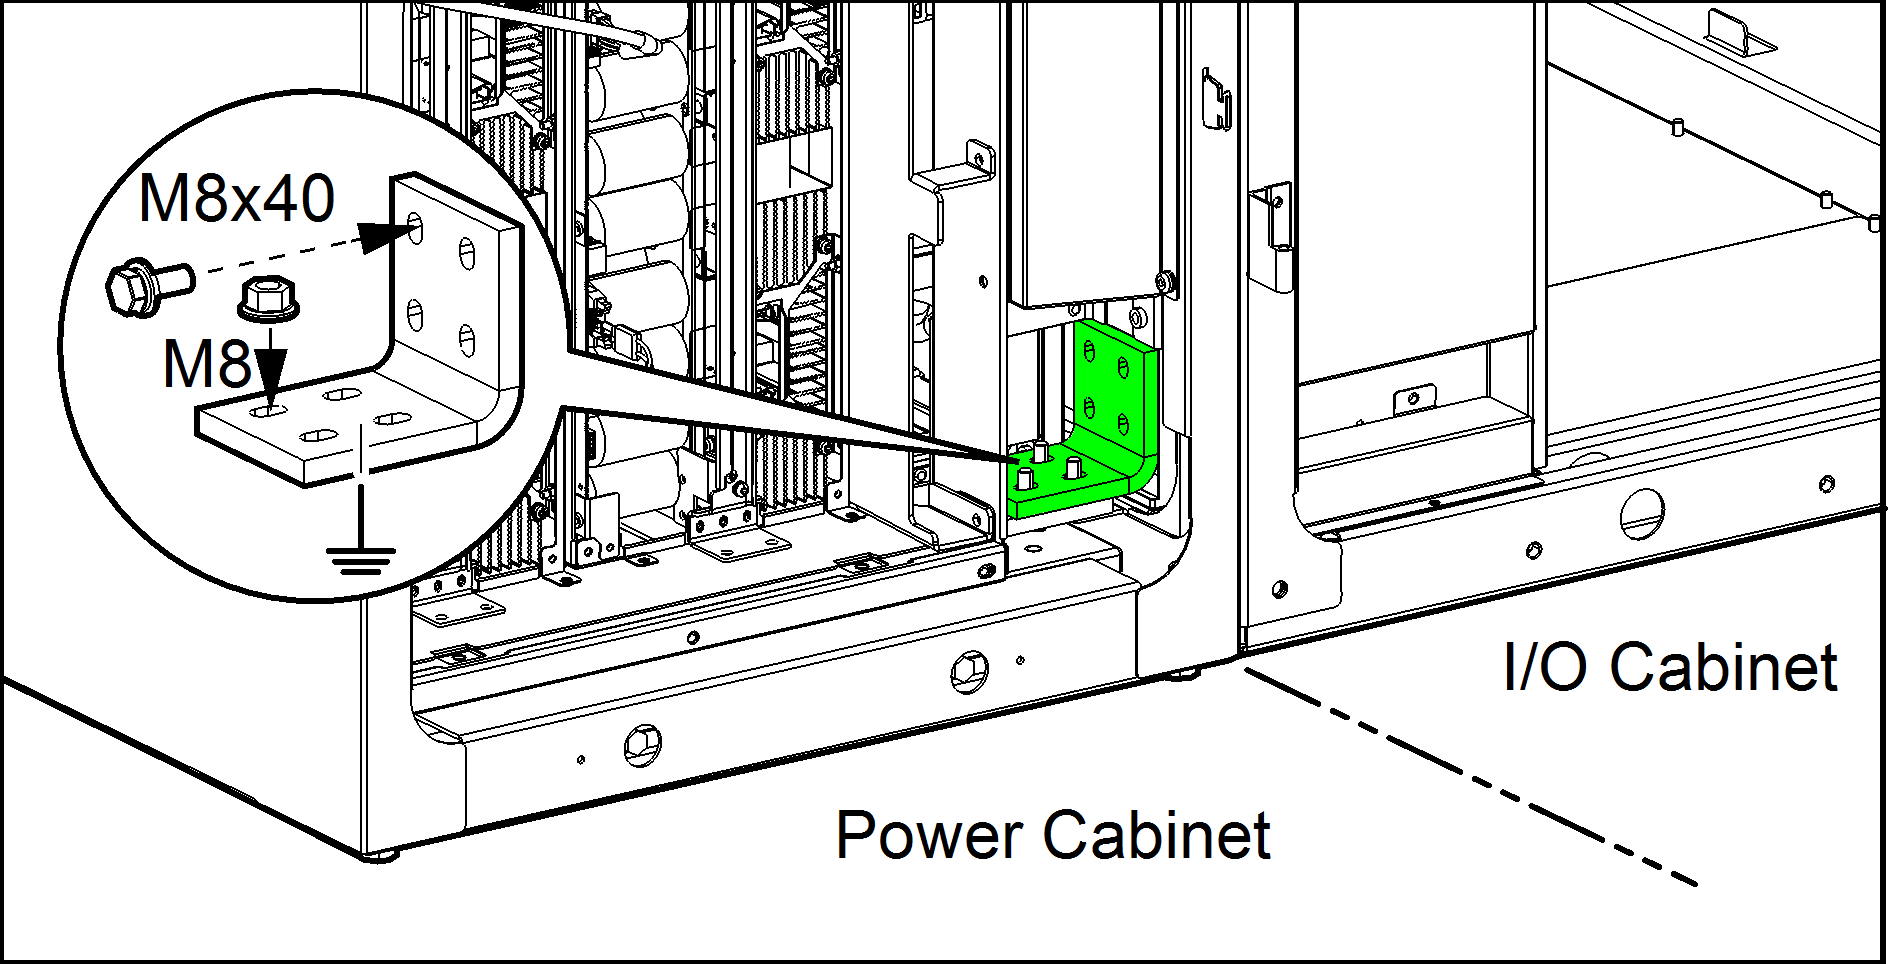 Install the Busbars between the I/O Cabinet and the Power